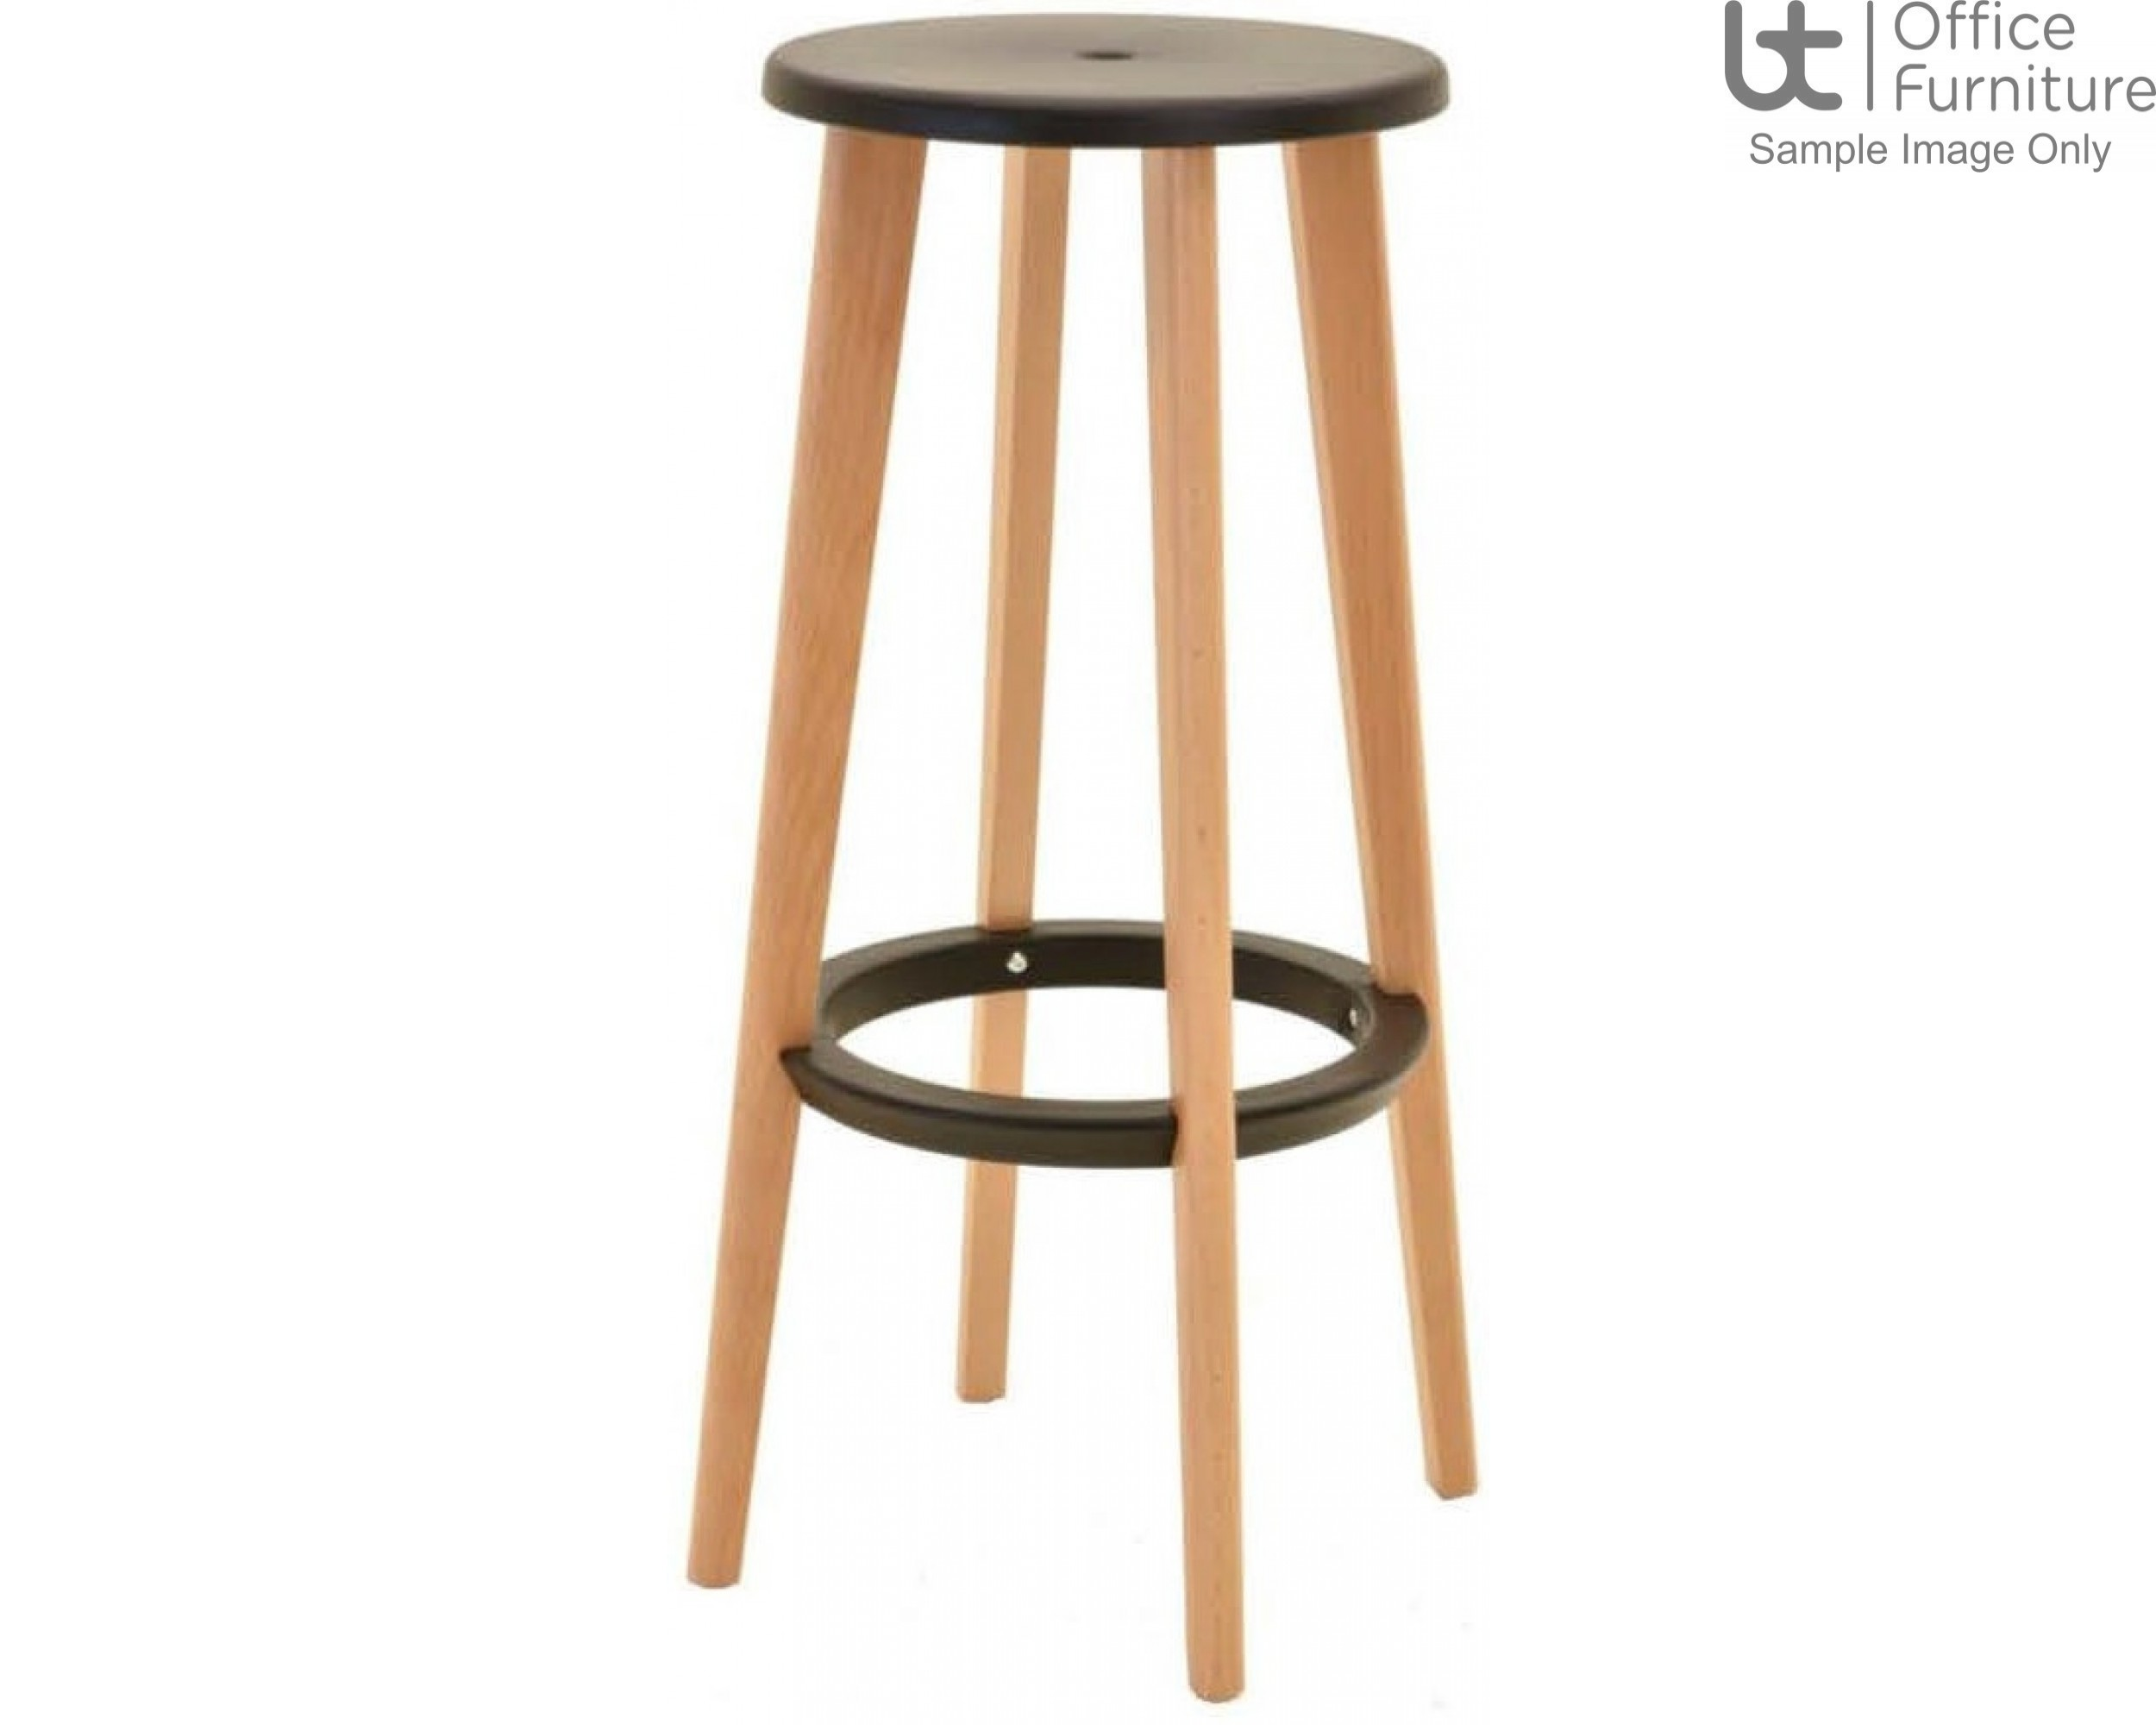 Verco Multi Pupose Seating - Button Stool + Black Plastic Seat with Beech Leg Frame & Black footrest